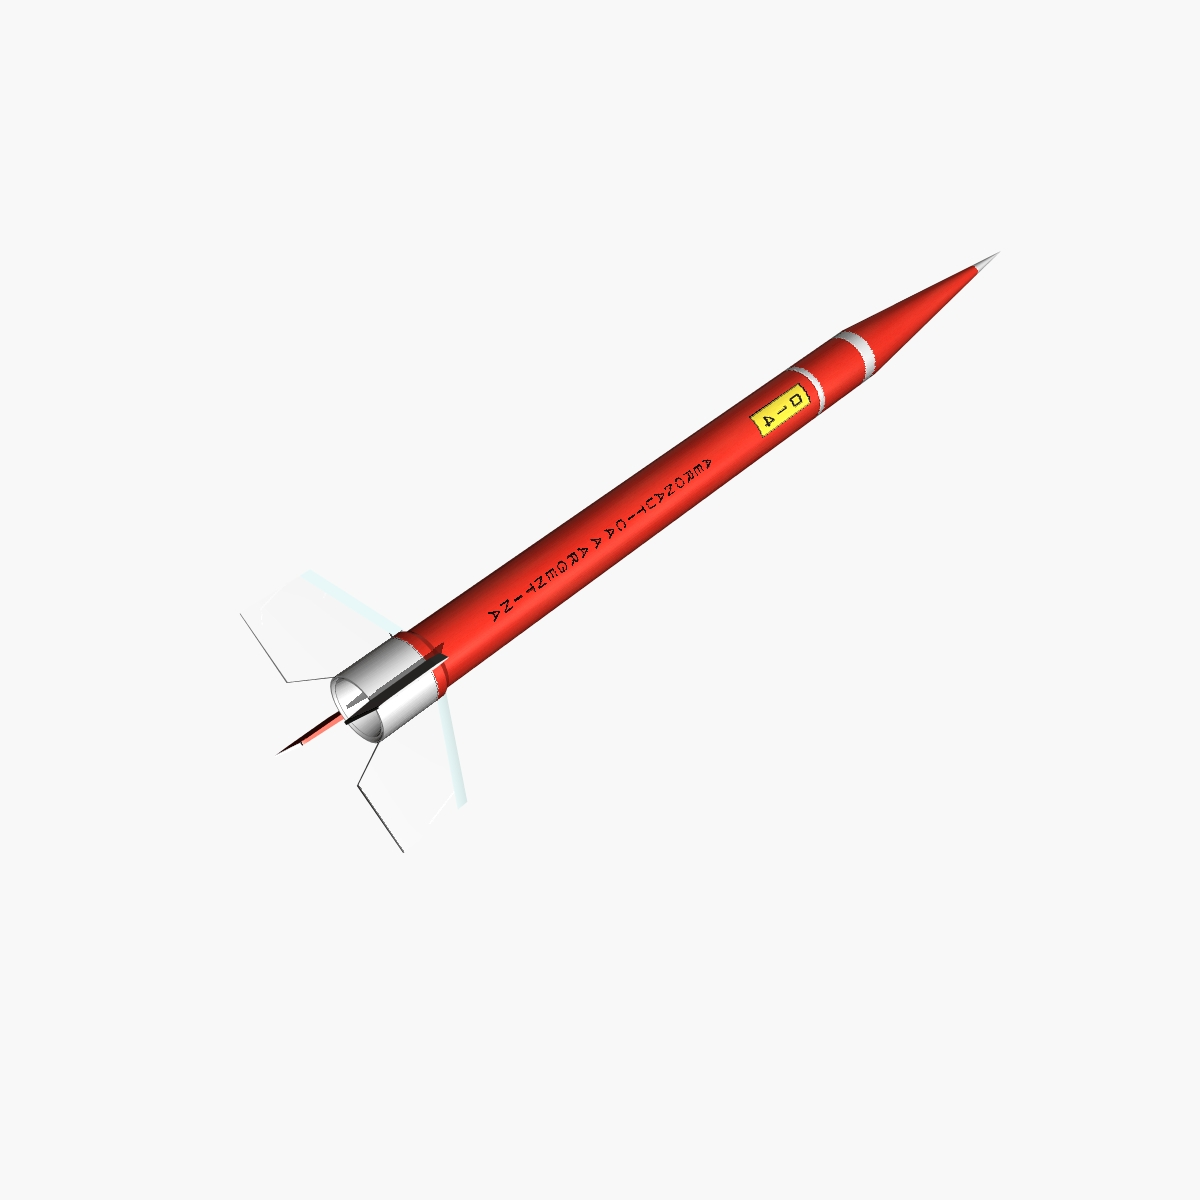 orion ii rocket 3d model 3ds dxf fbx blend cob dae x  obj 208631